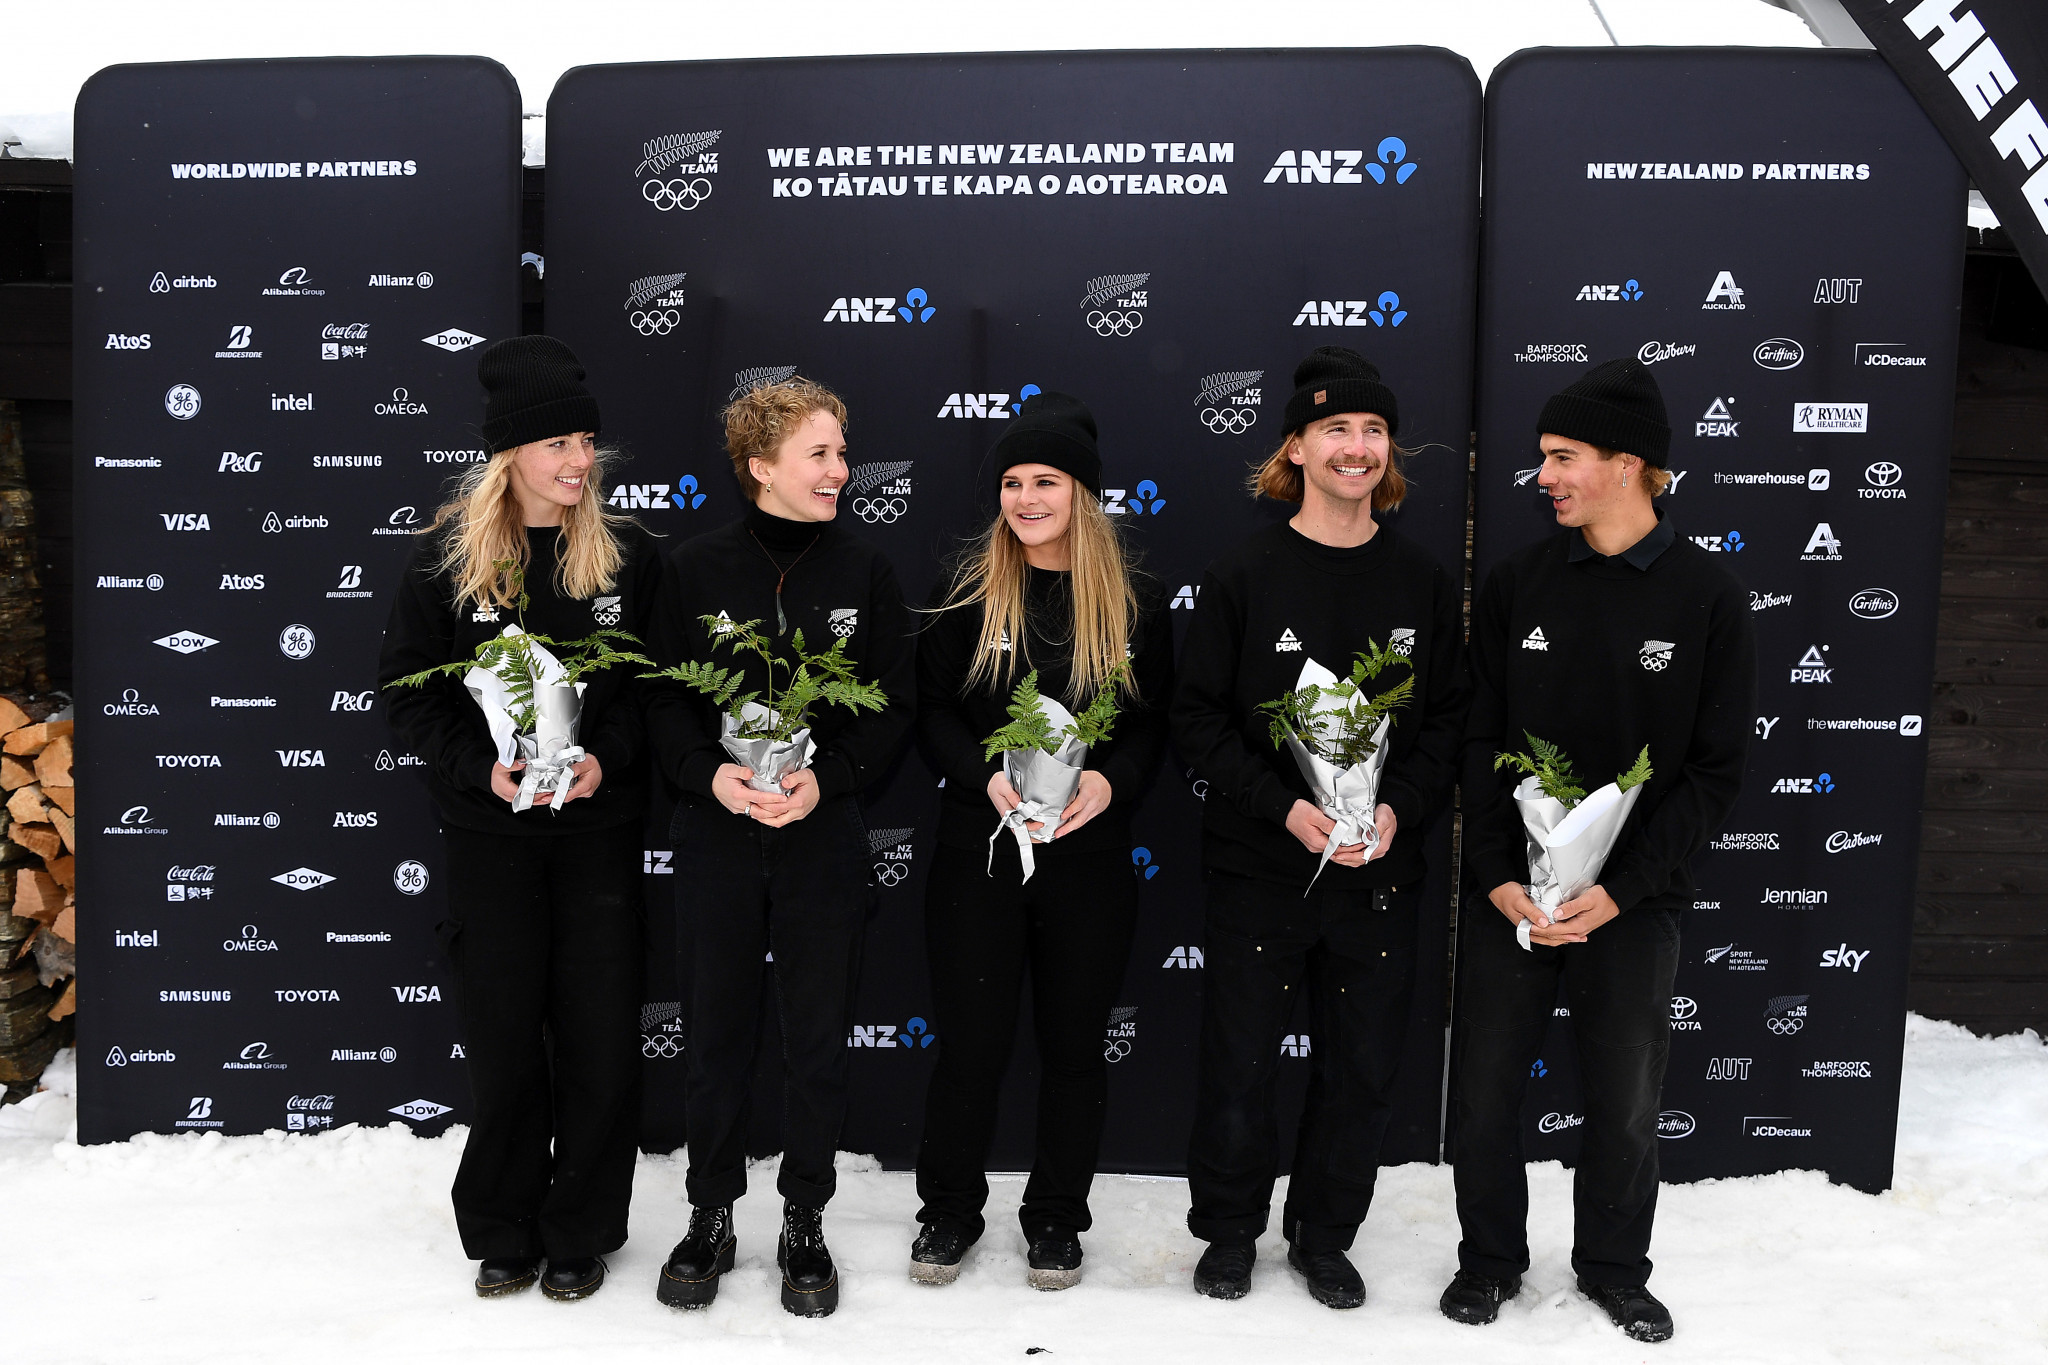 Olympic medallists among first New Zealand selections for Beijing 2022